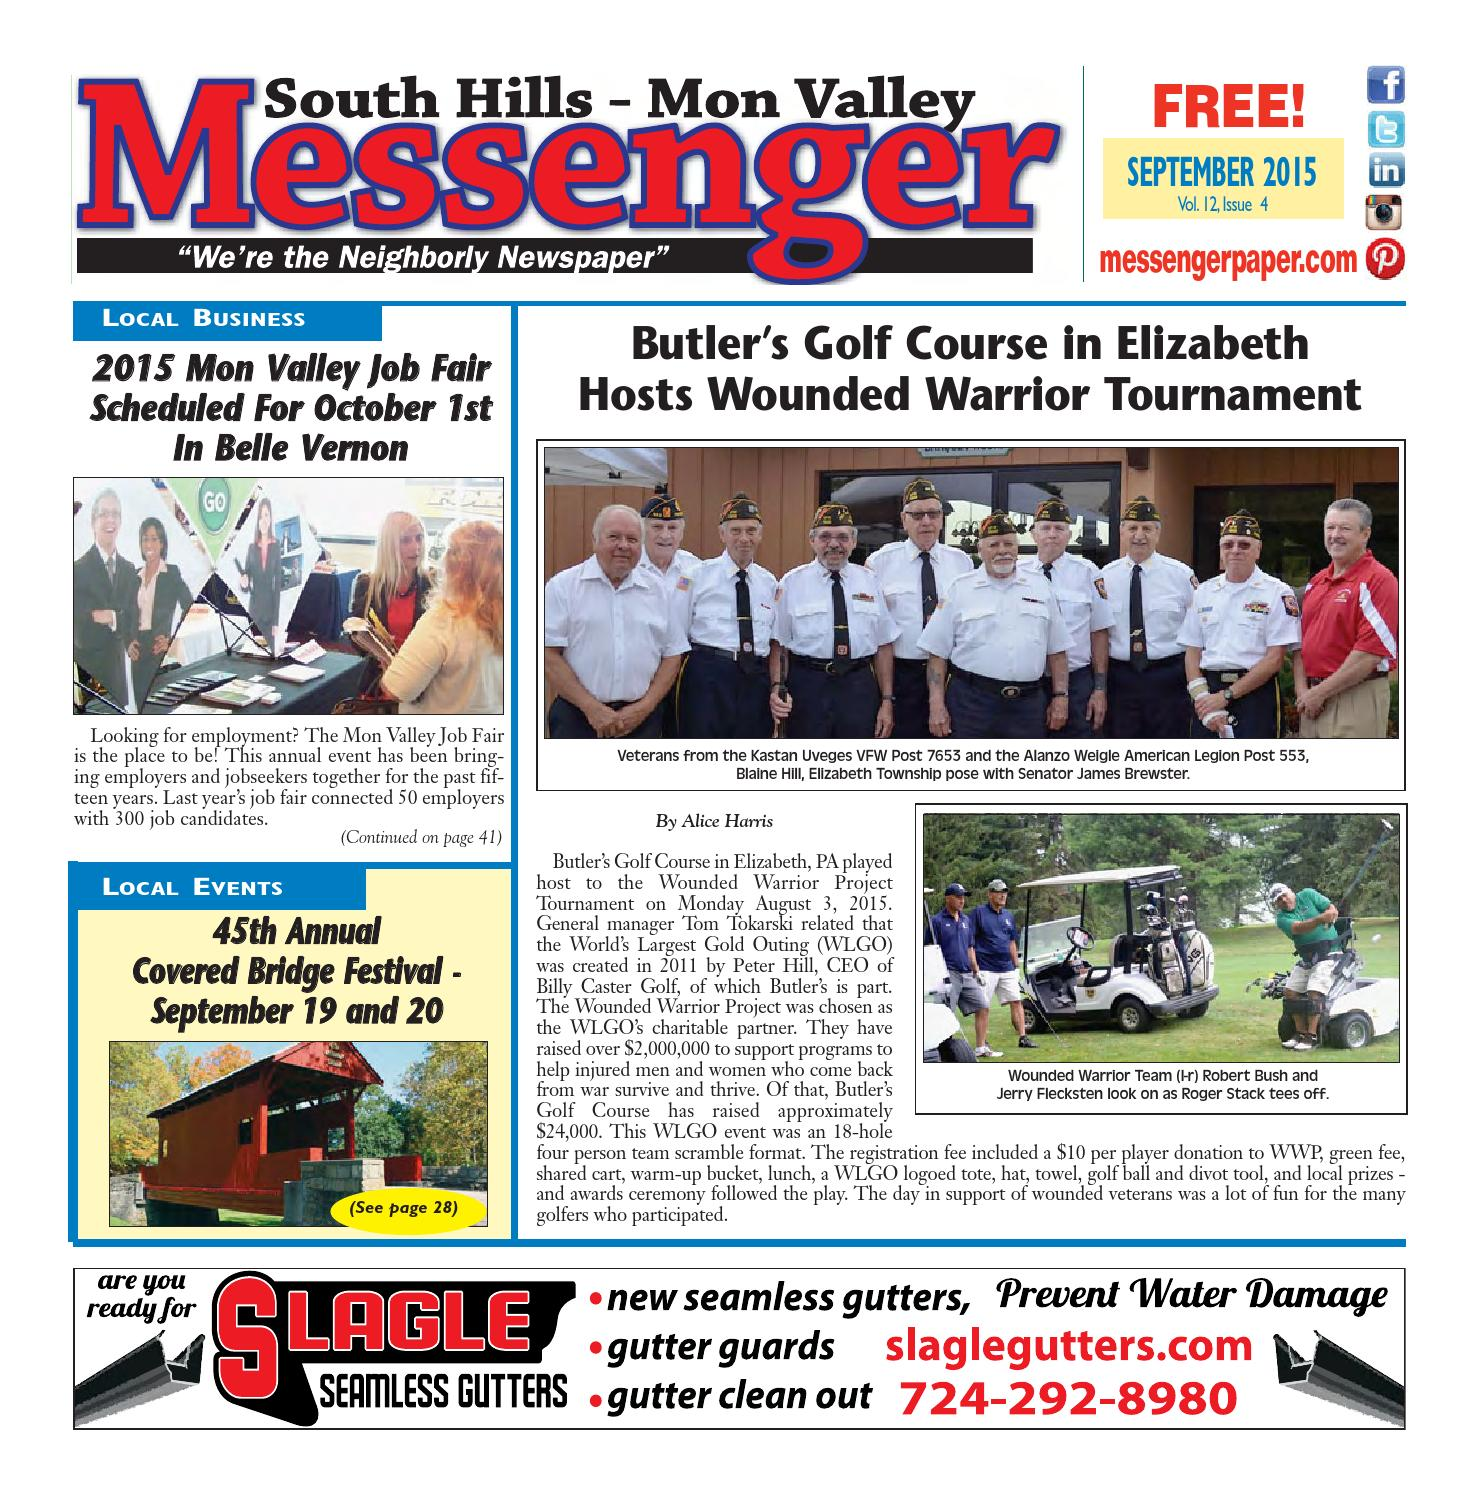 South hills mon valley messenger january 2015 by south hills mon south hills mon valley messenger september 2015 fandeluxe Choice Image